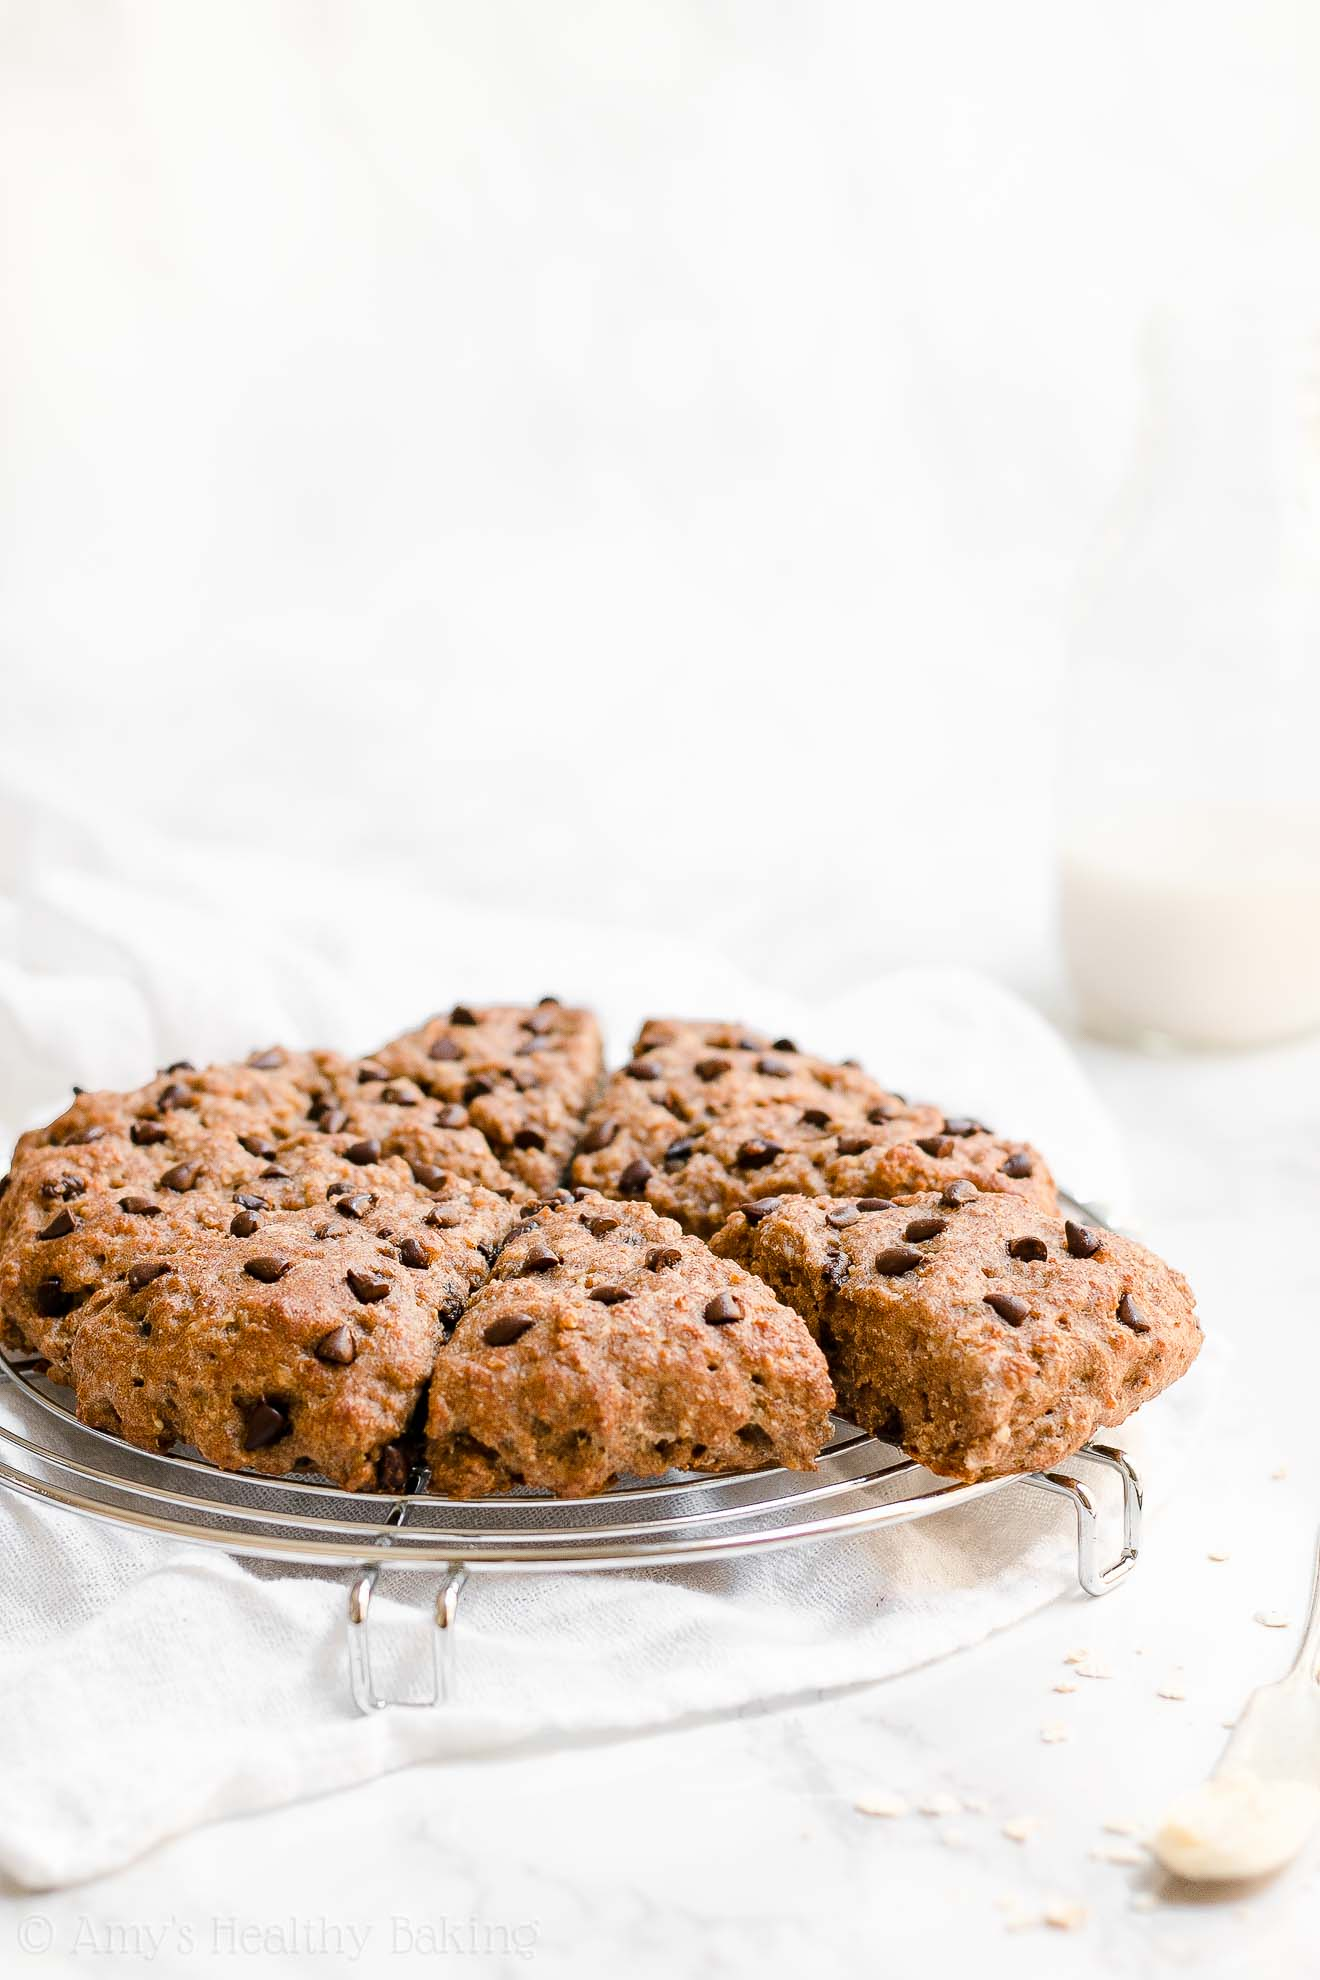 Moist Healthy Whole Wheat Oatmeal Chocolate Chip Scones